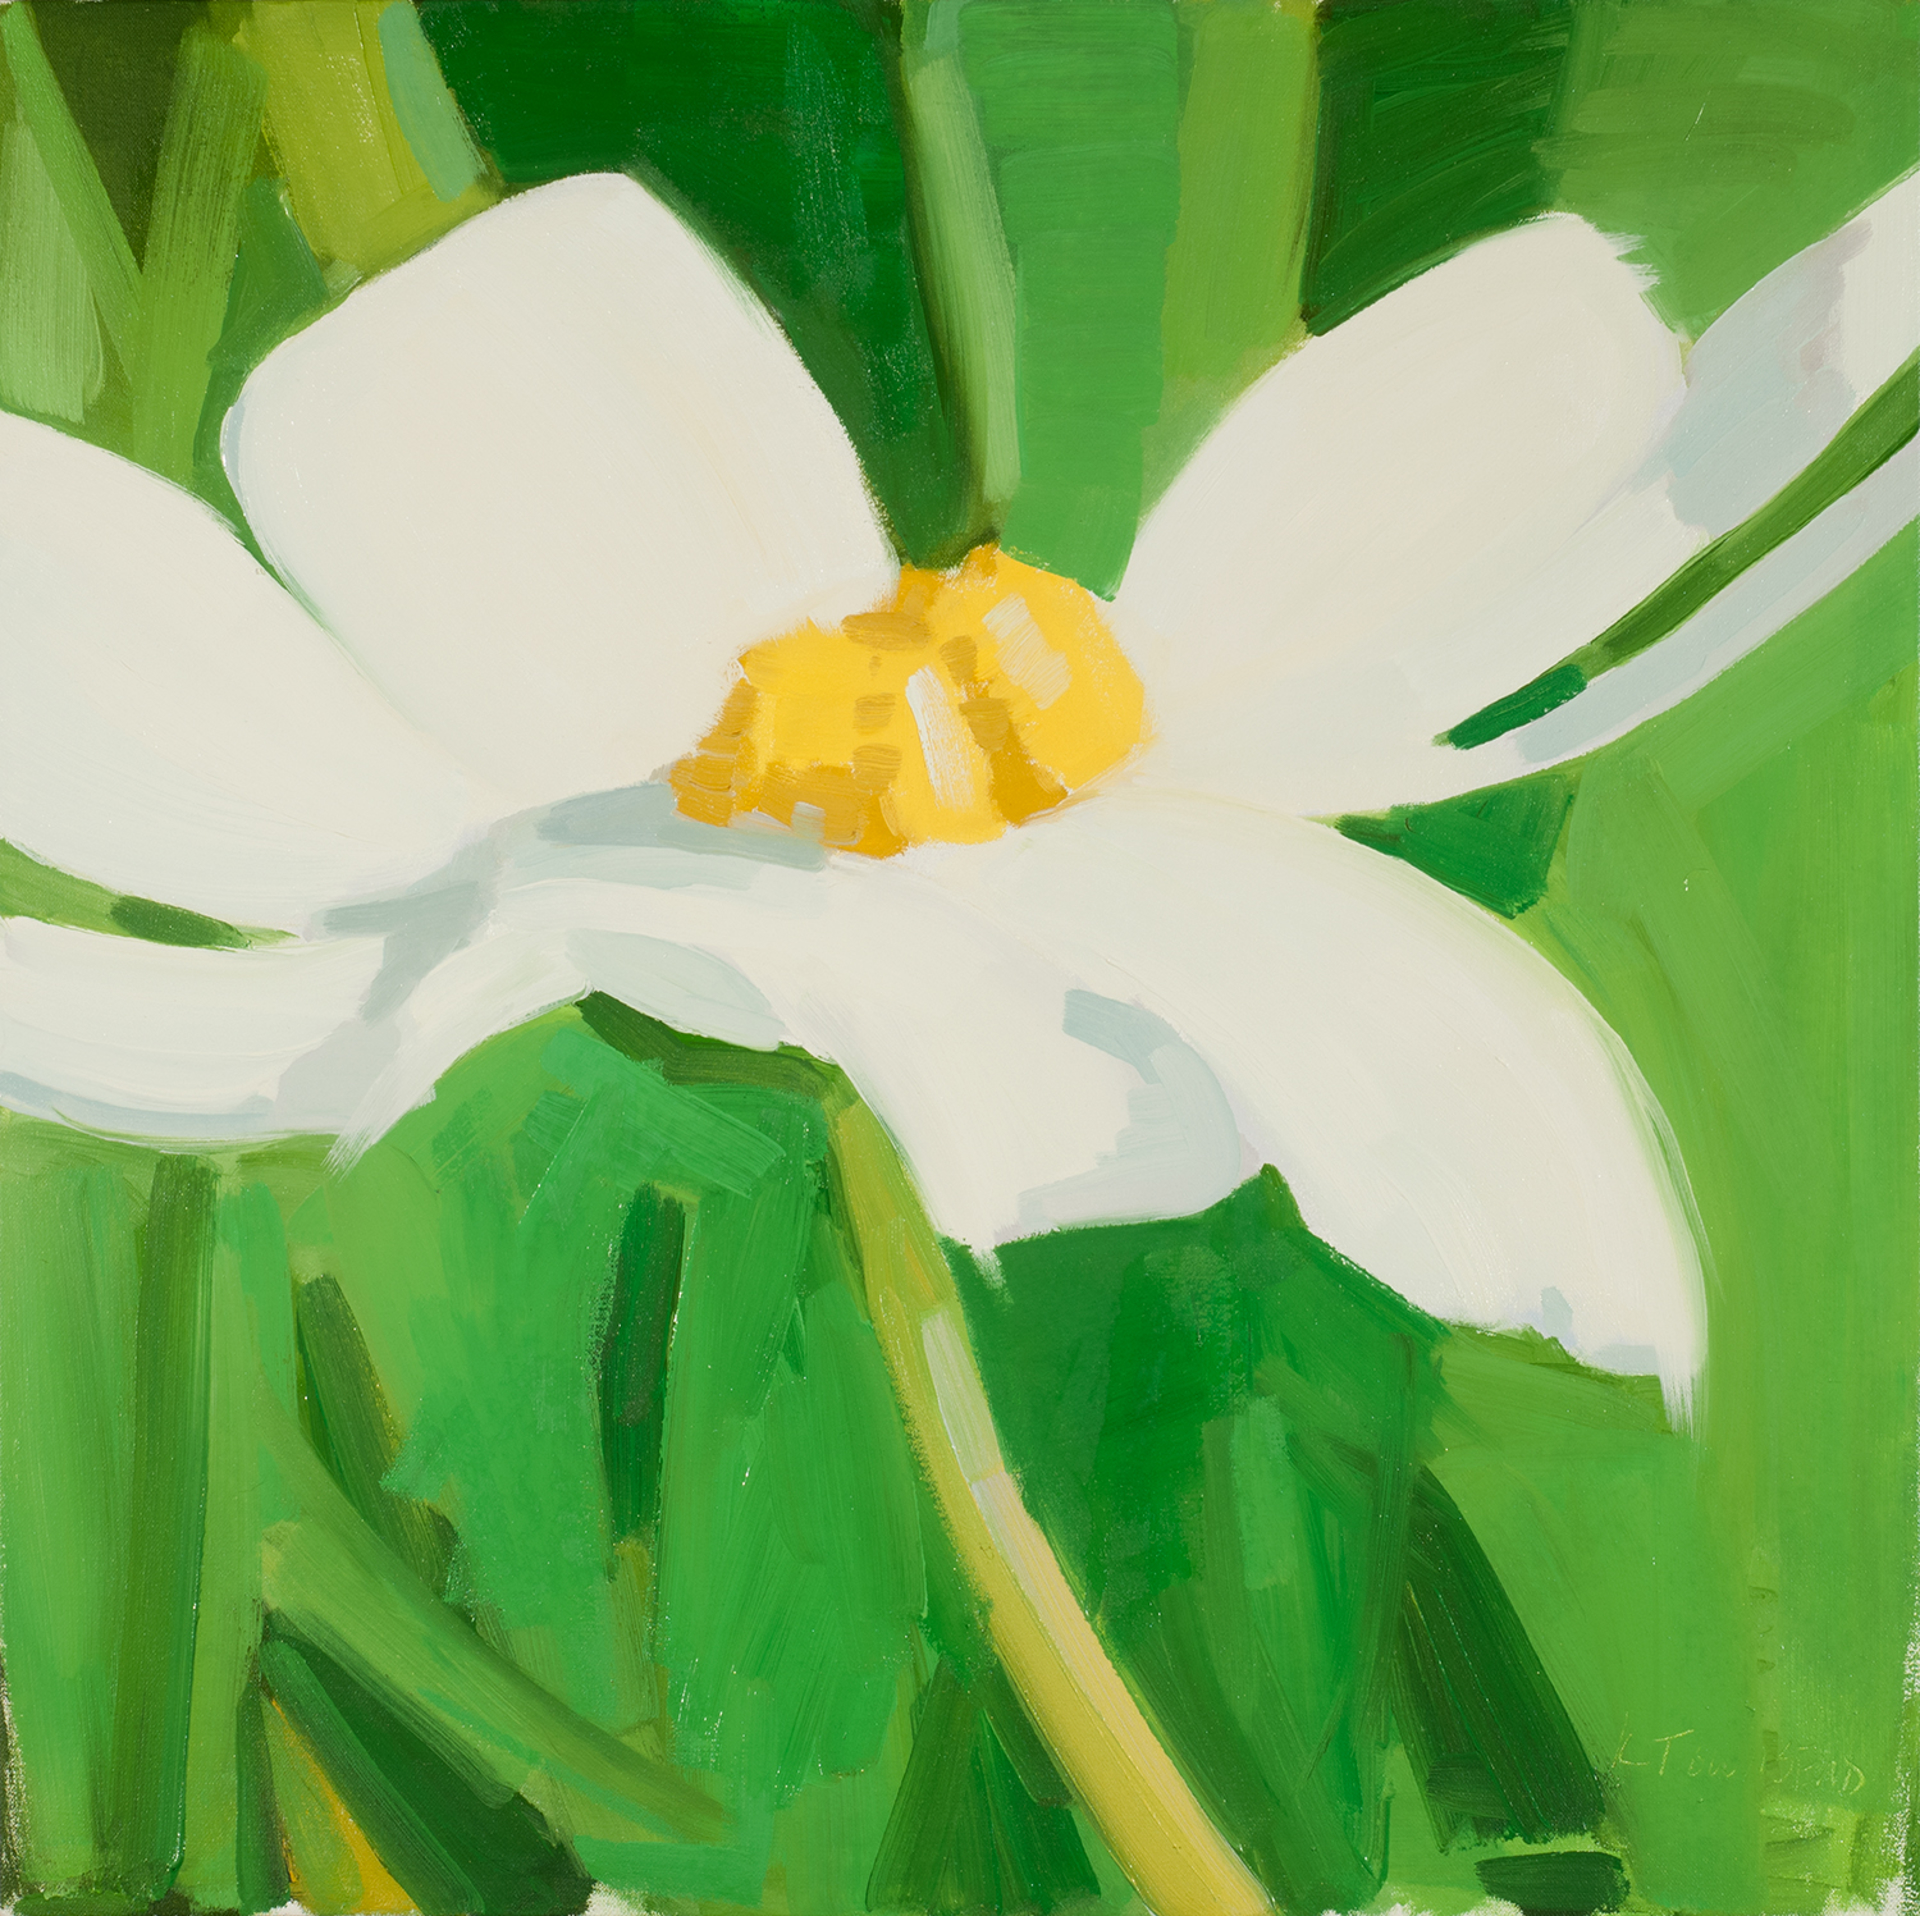 White Dancing Daisy by Krista Townsend